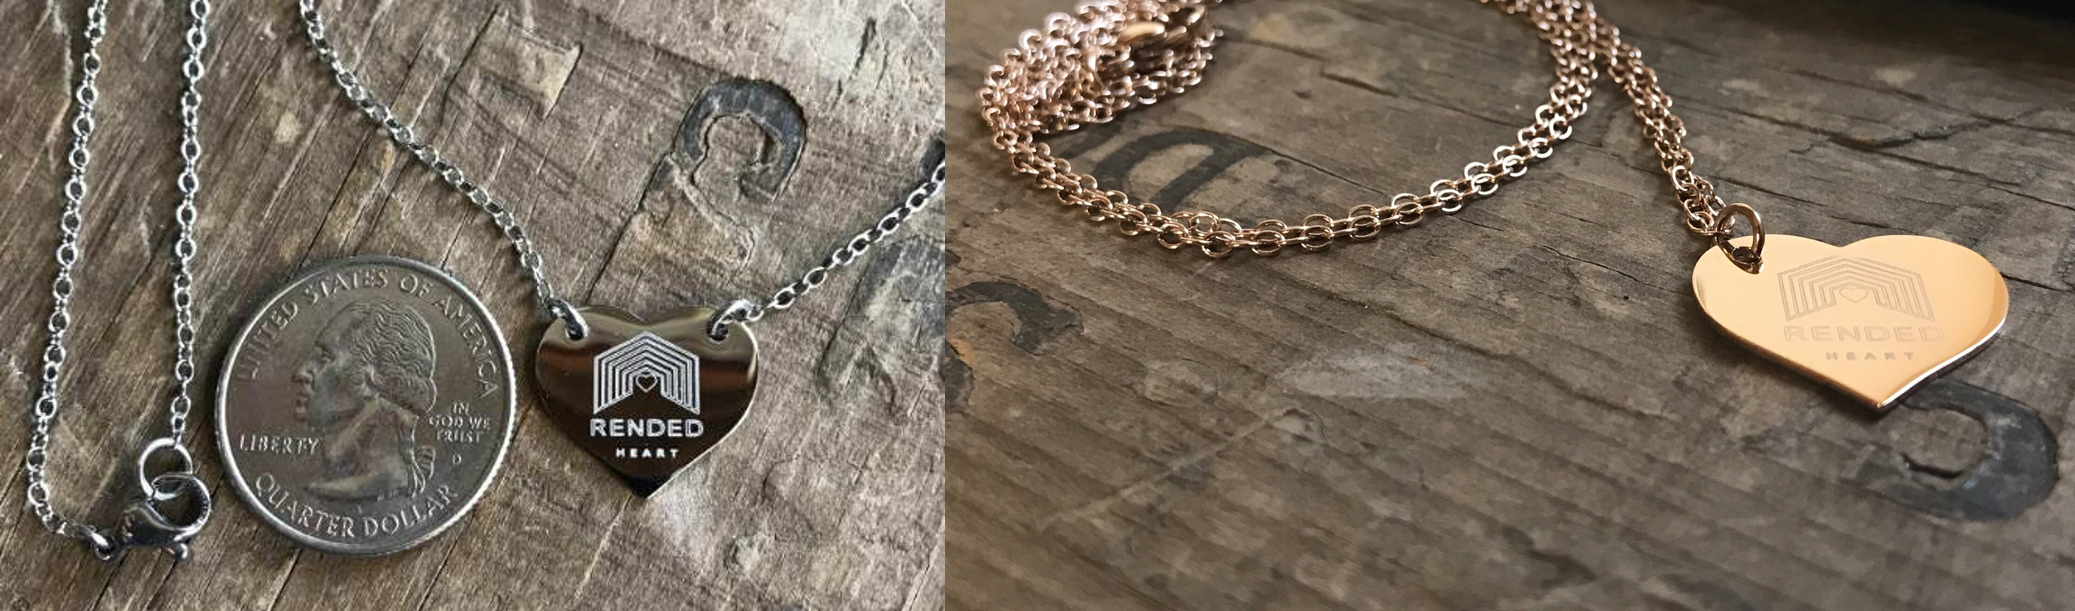 Rended Heart Necklace